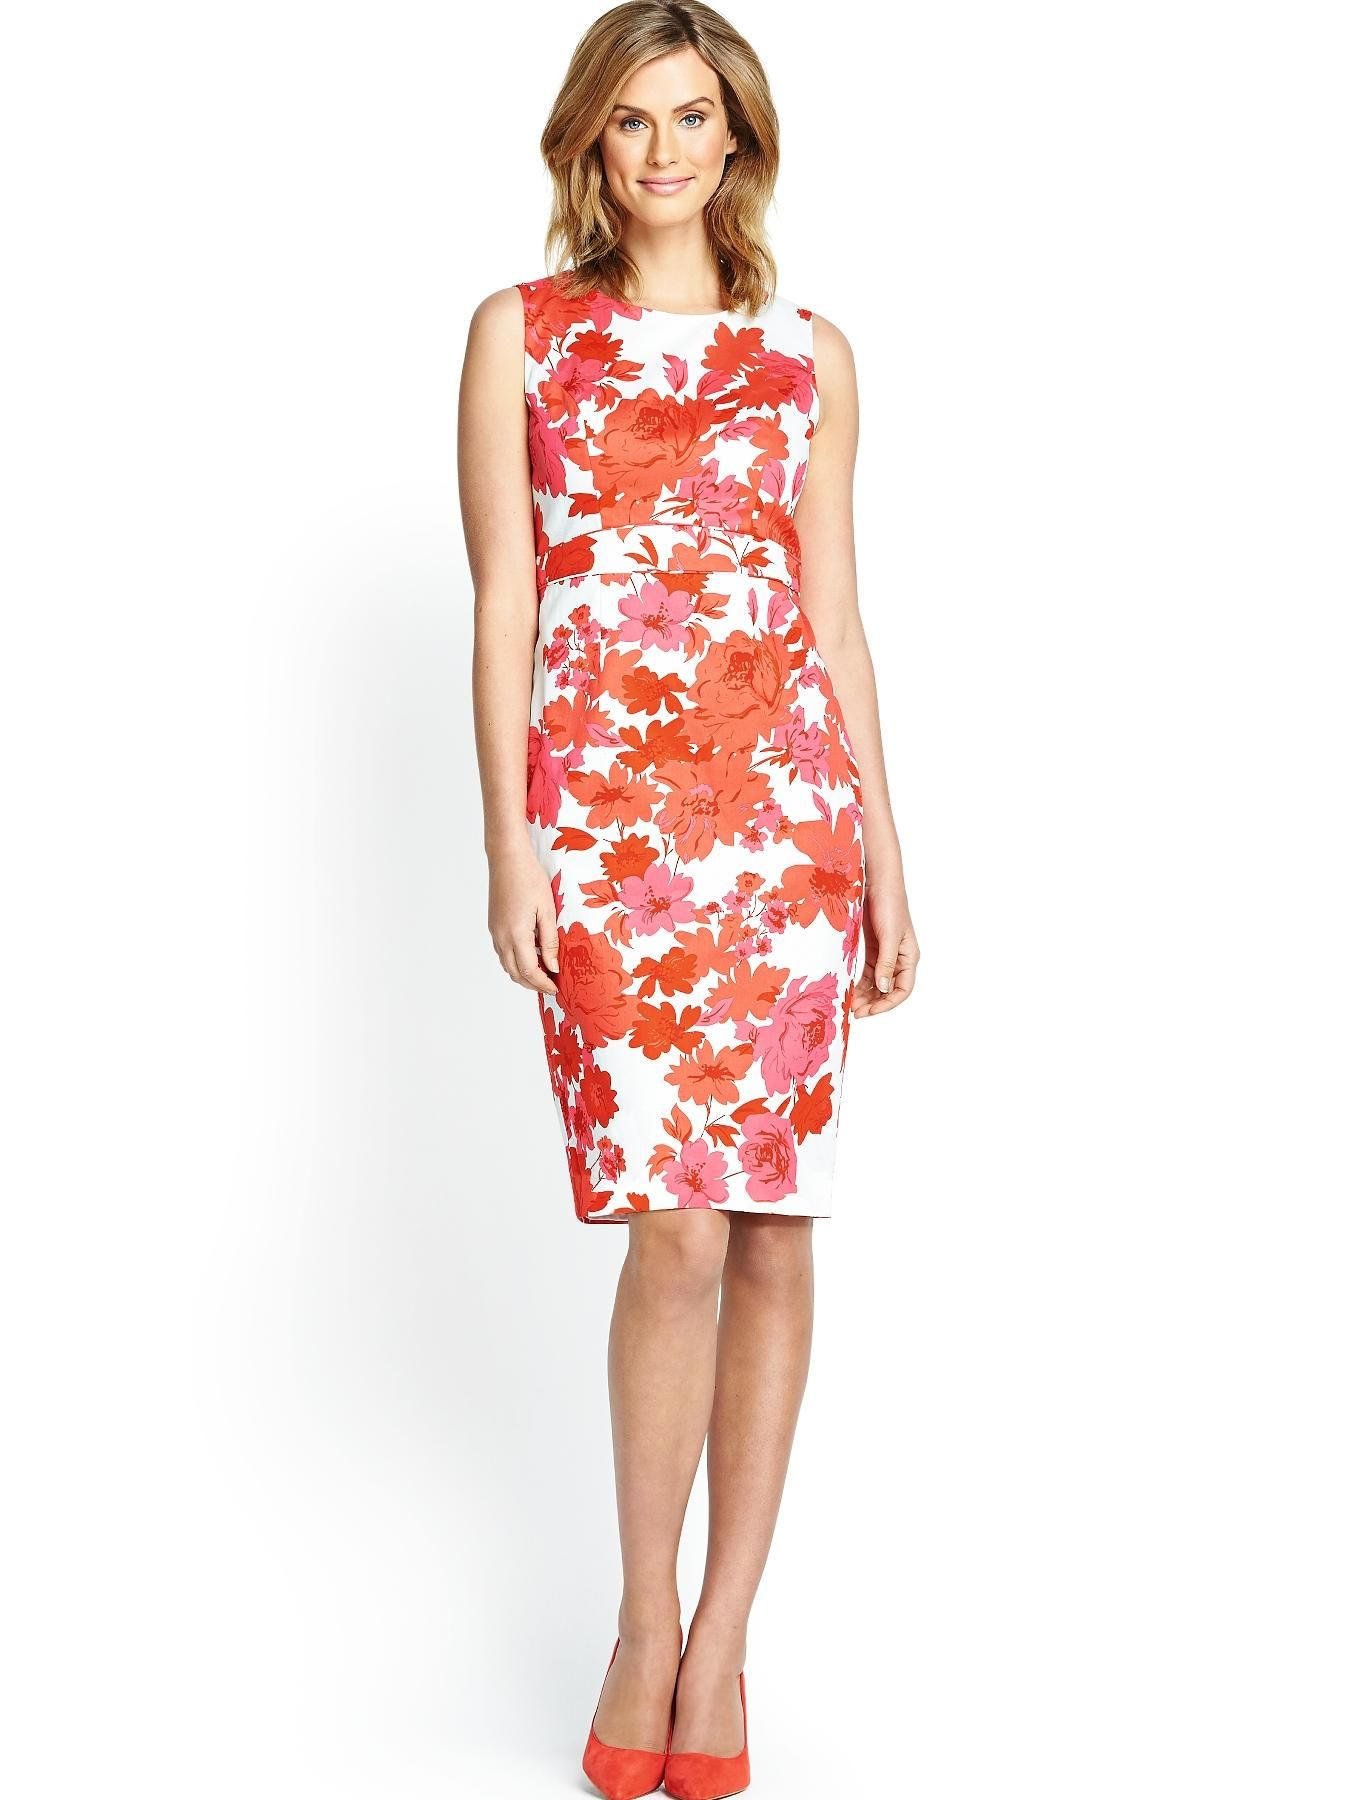 Savoir printed pencil dress littlewoods mum and channy savoir printed pencil dress littlewoods ombrellifo Image collections